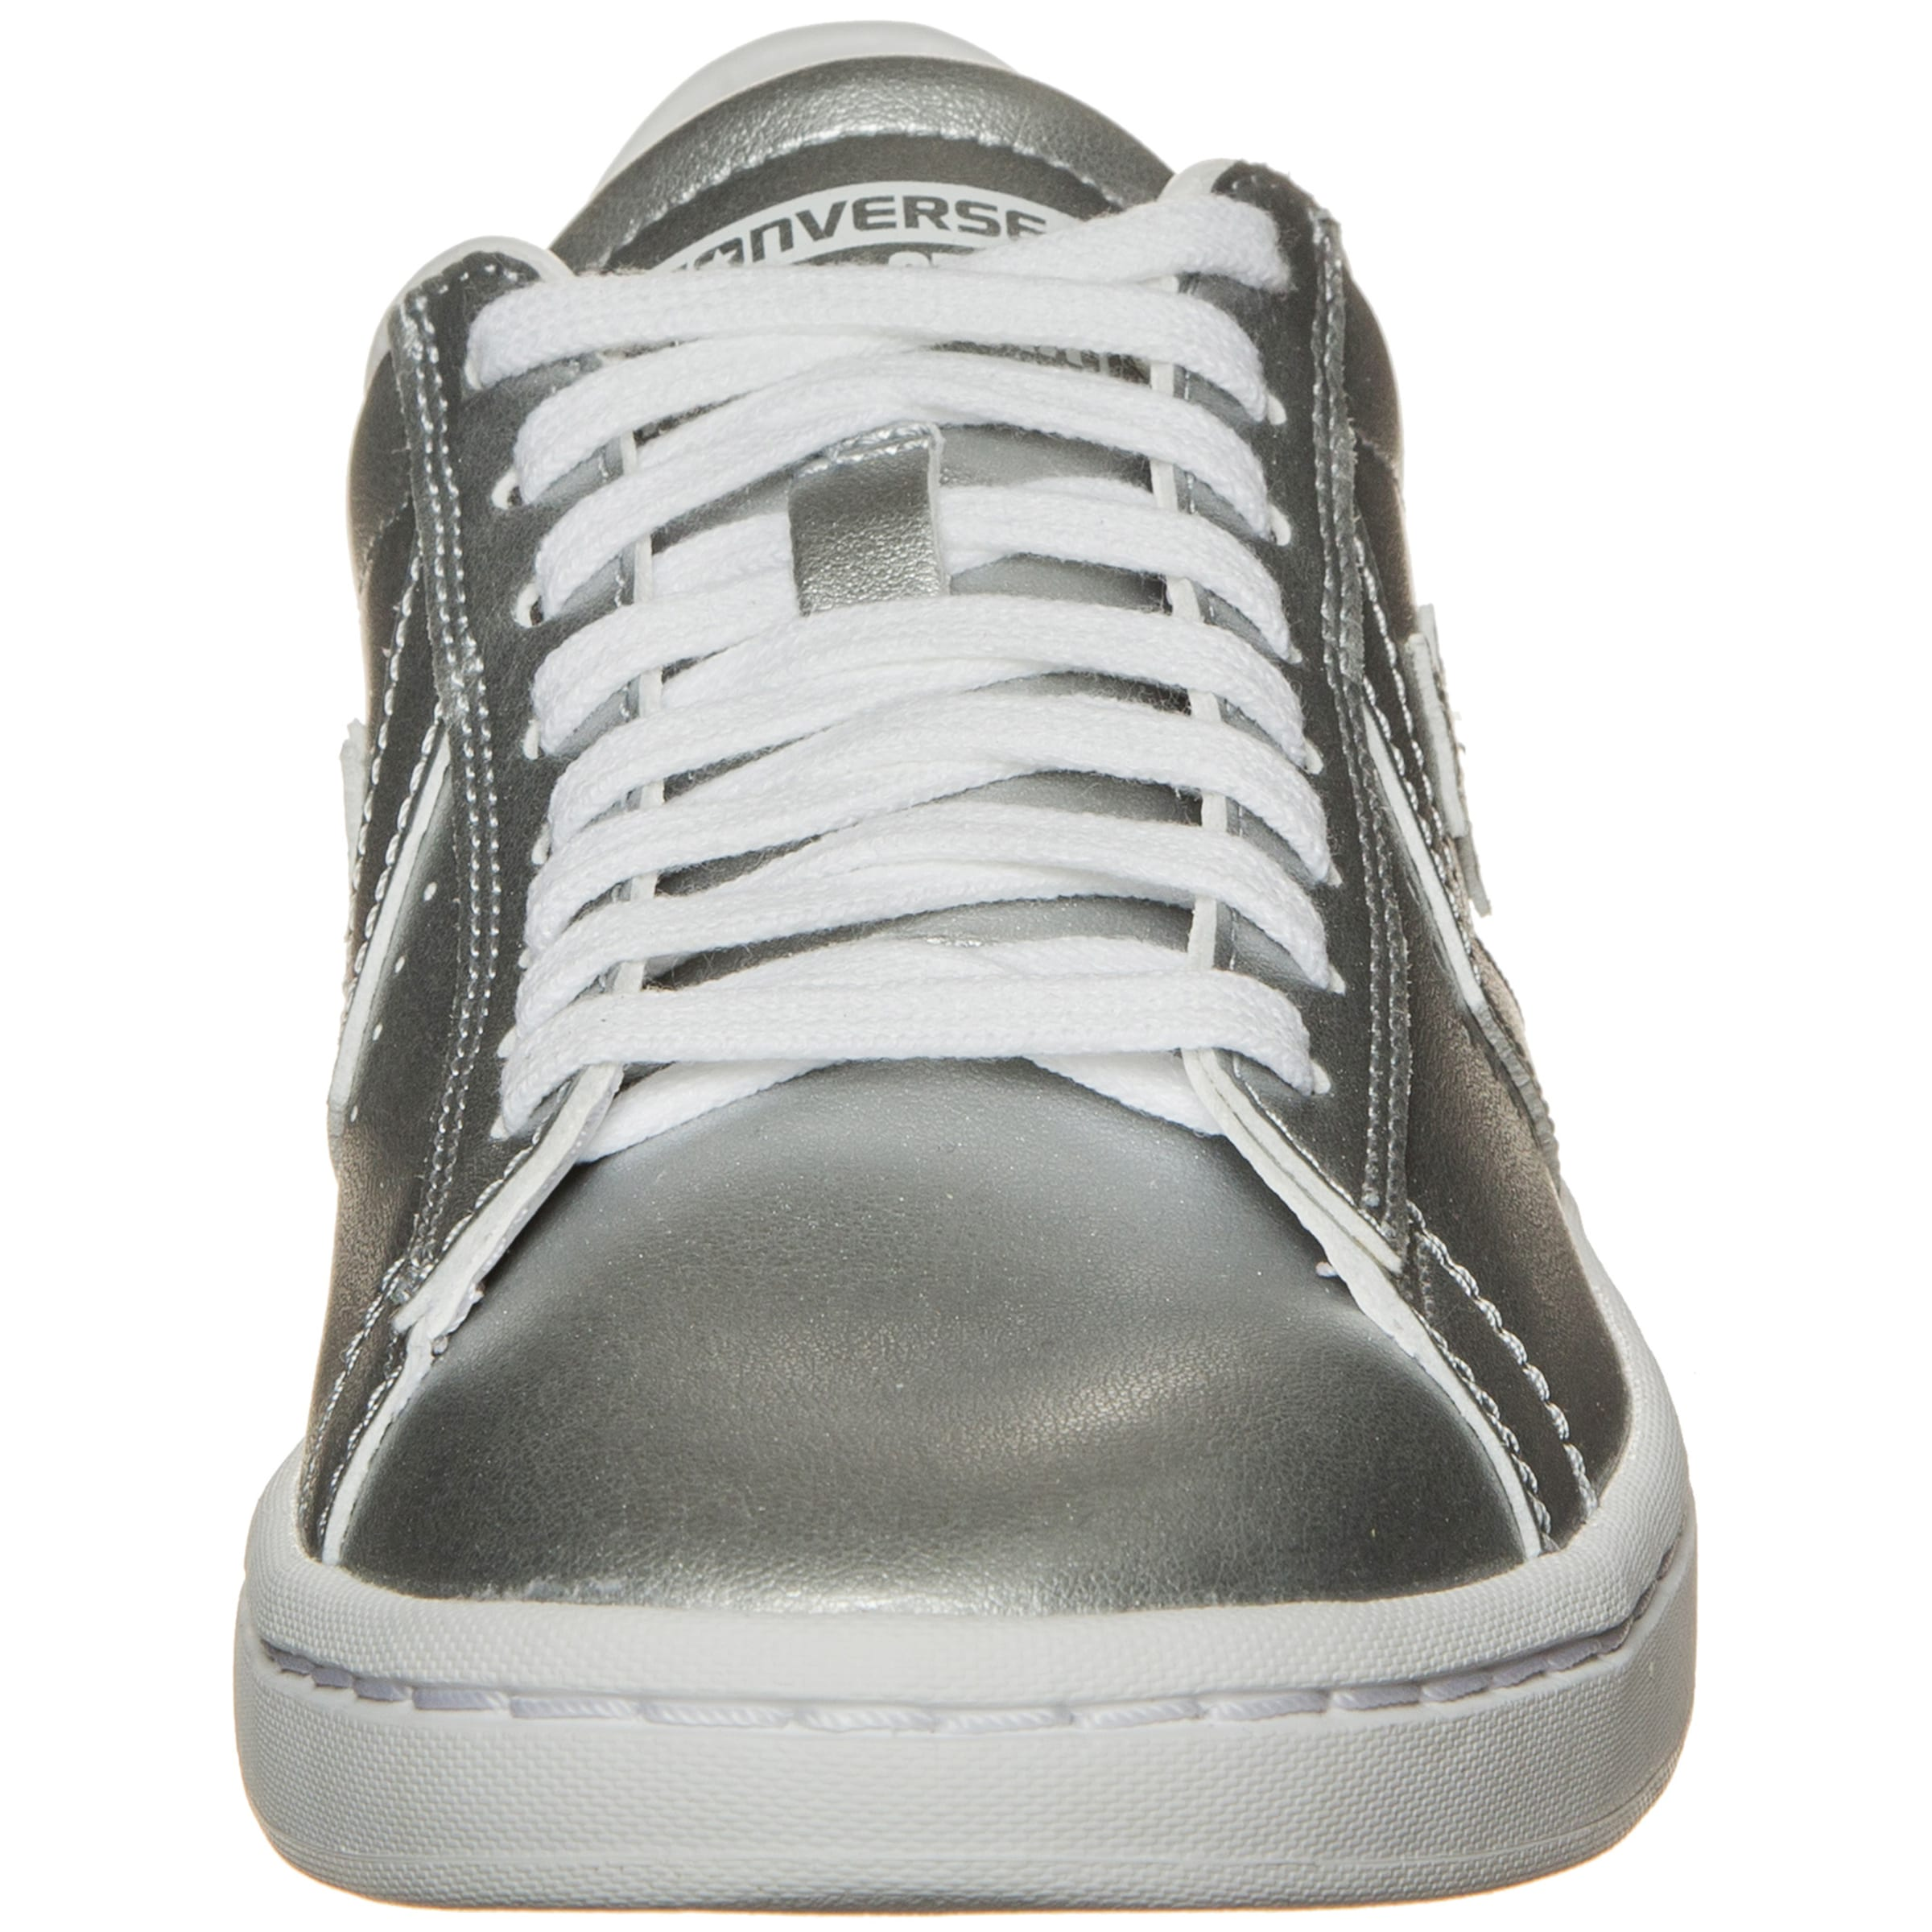 Lp Ox' Leather Metallic Sneaker Converse Silber In 'pro 4RcAqL35j